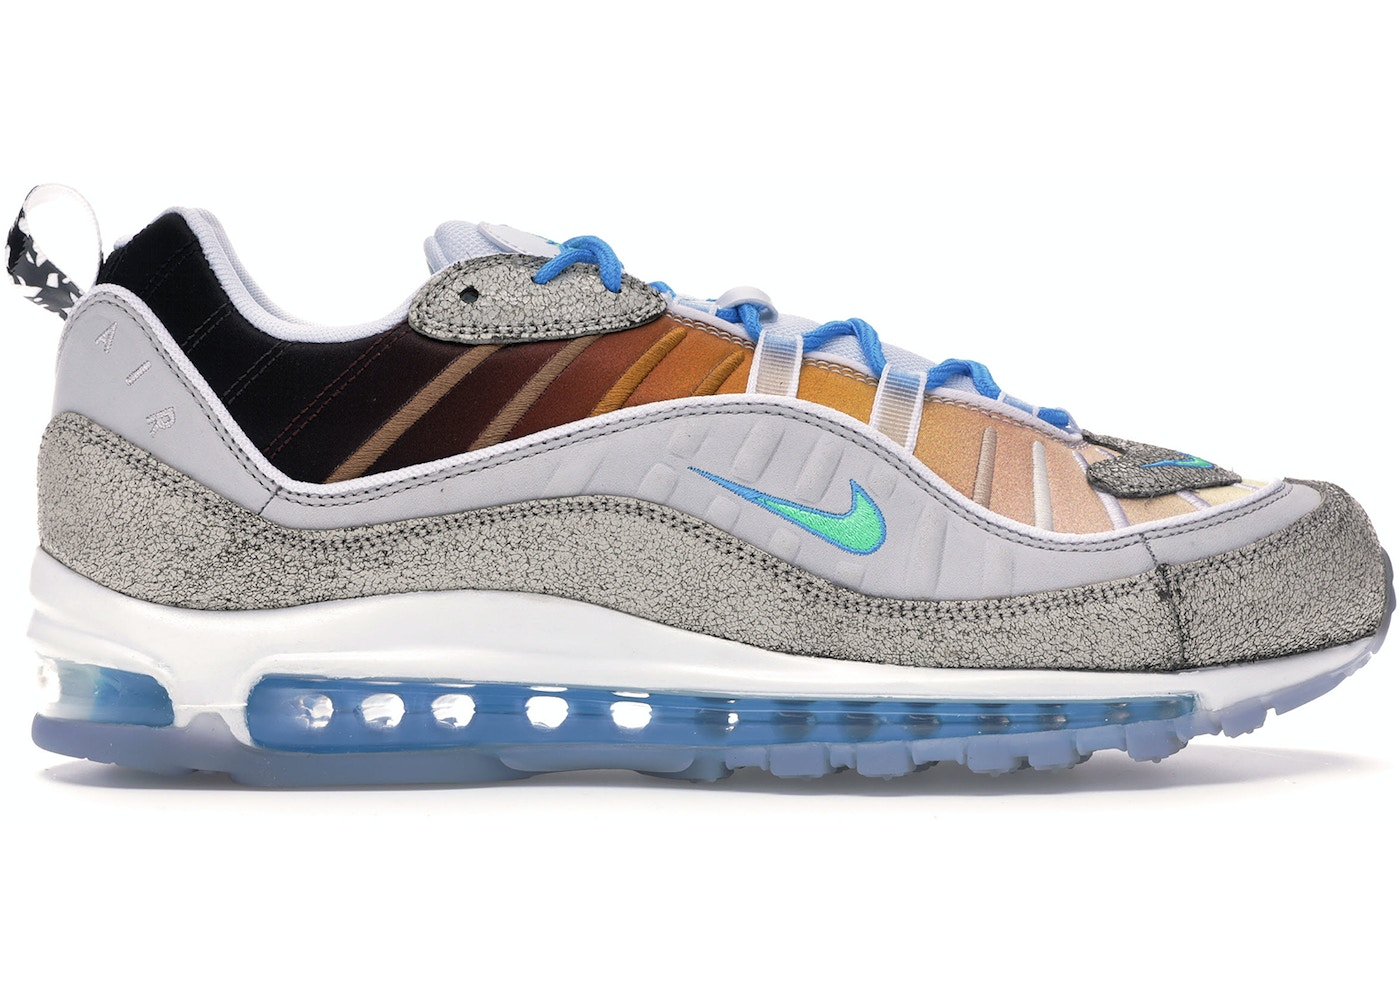 reputable site 5fd30 2aa2f Air Max 98 La Mezcla